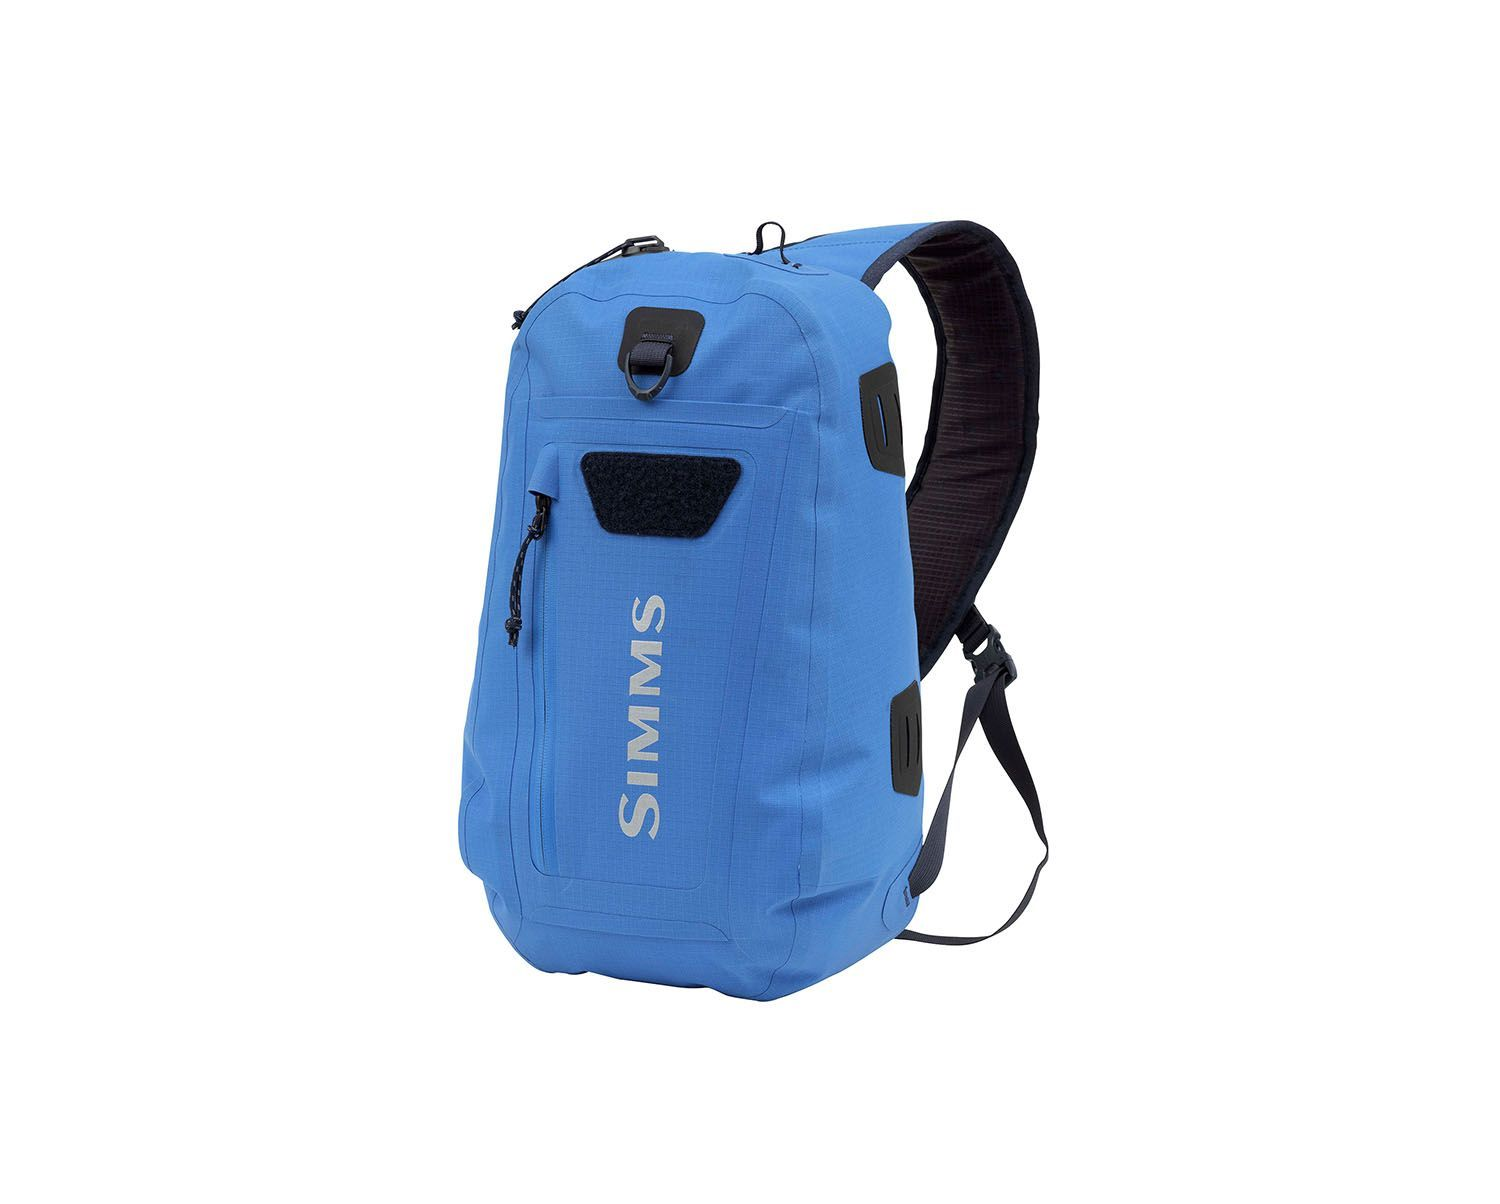 Simms Dry Creek Z Fishing Sling Pack - 15L